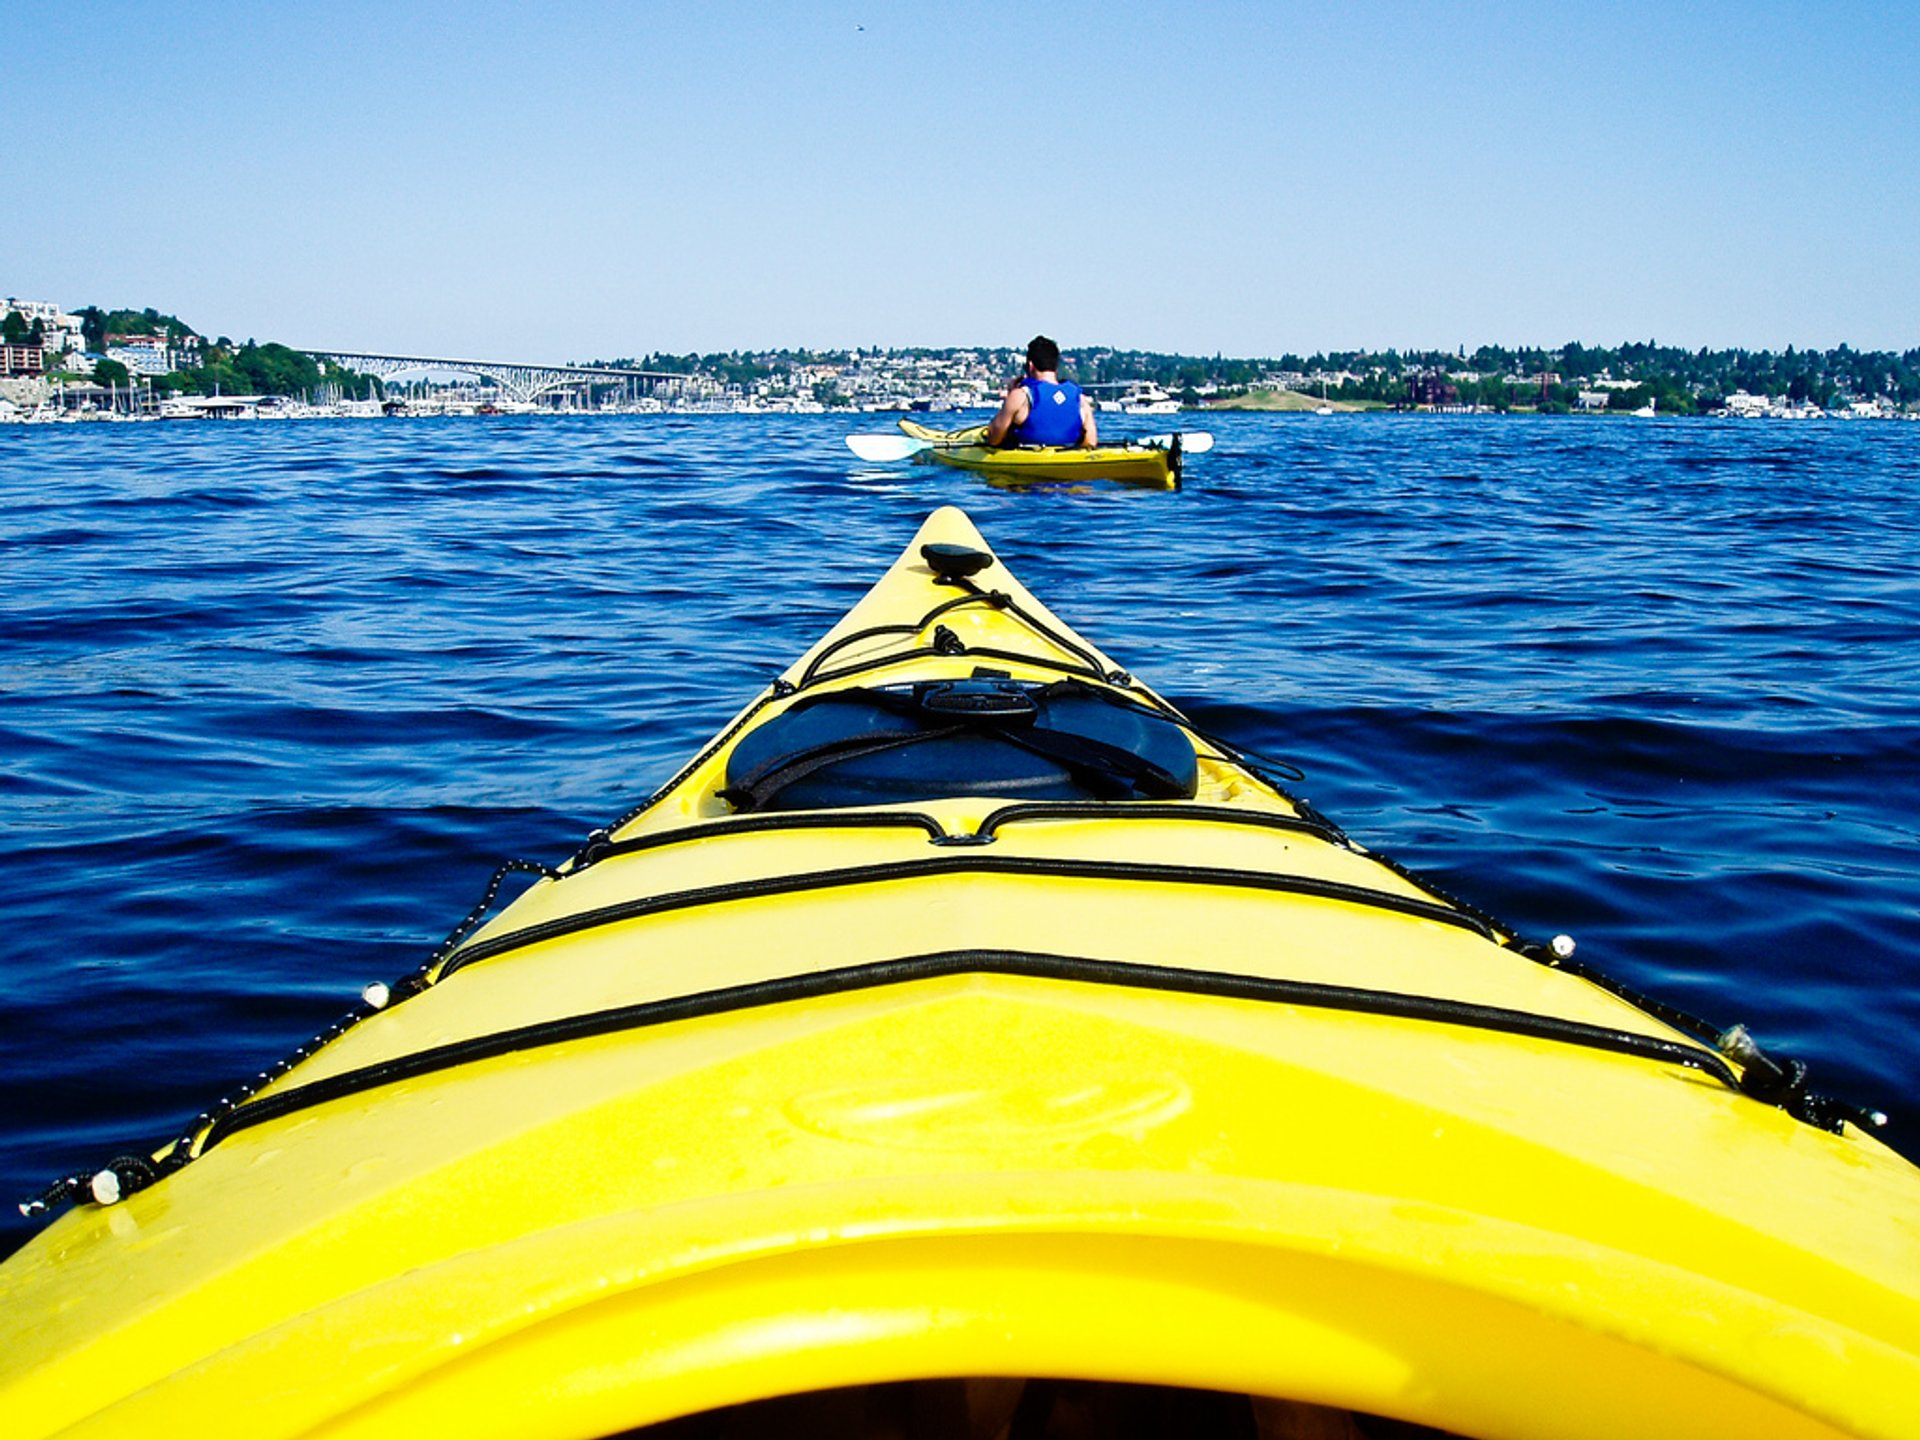 Kayaking on Lake Union 2020